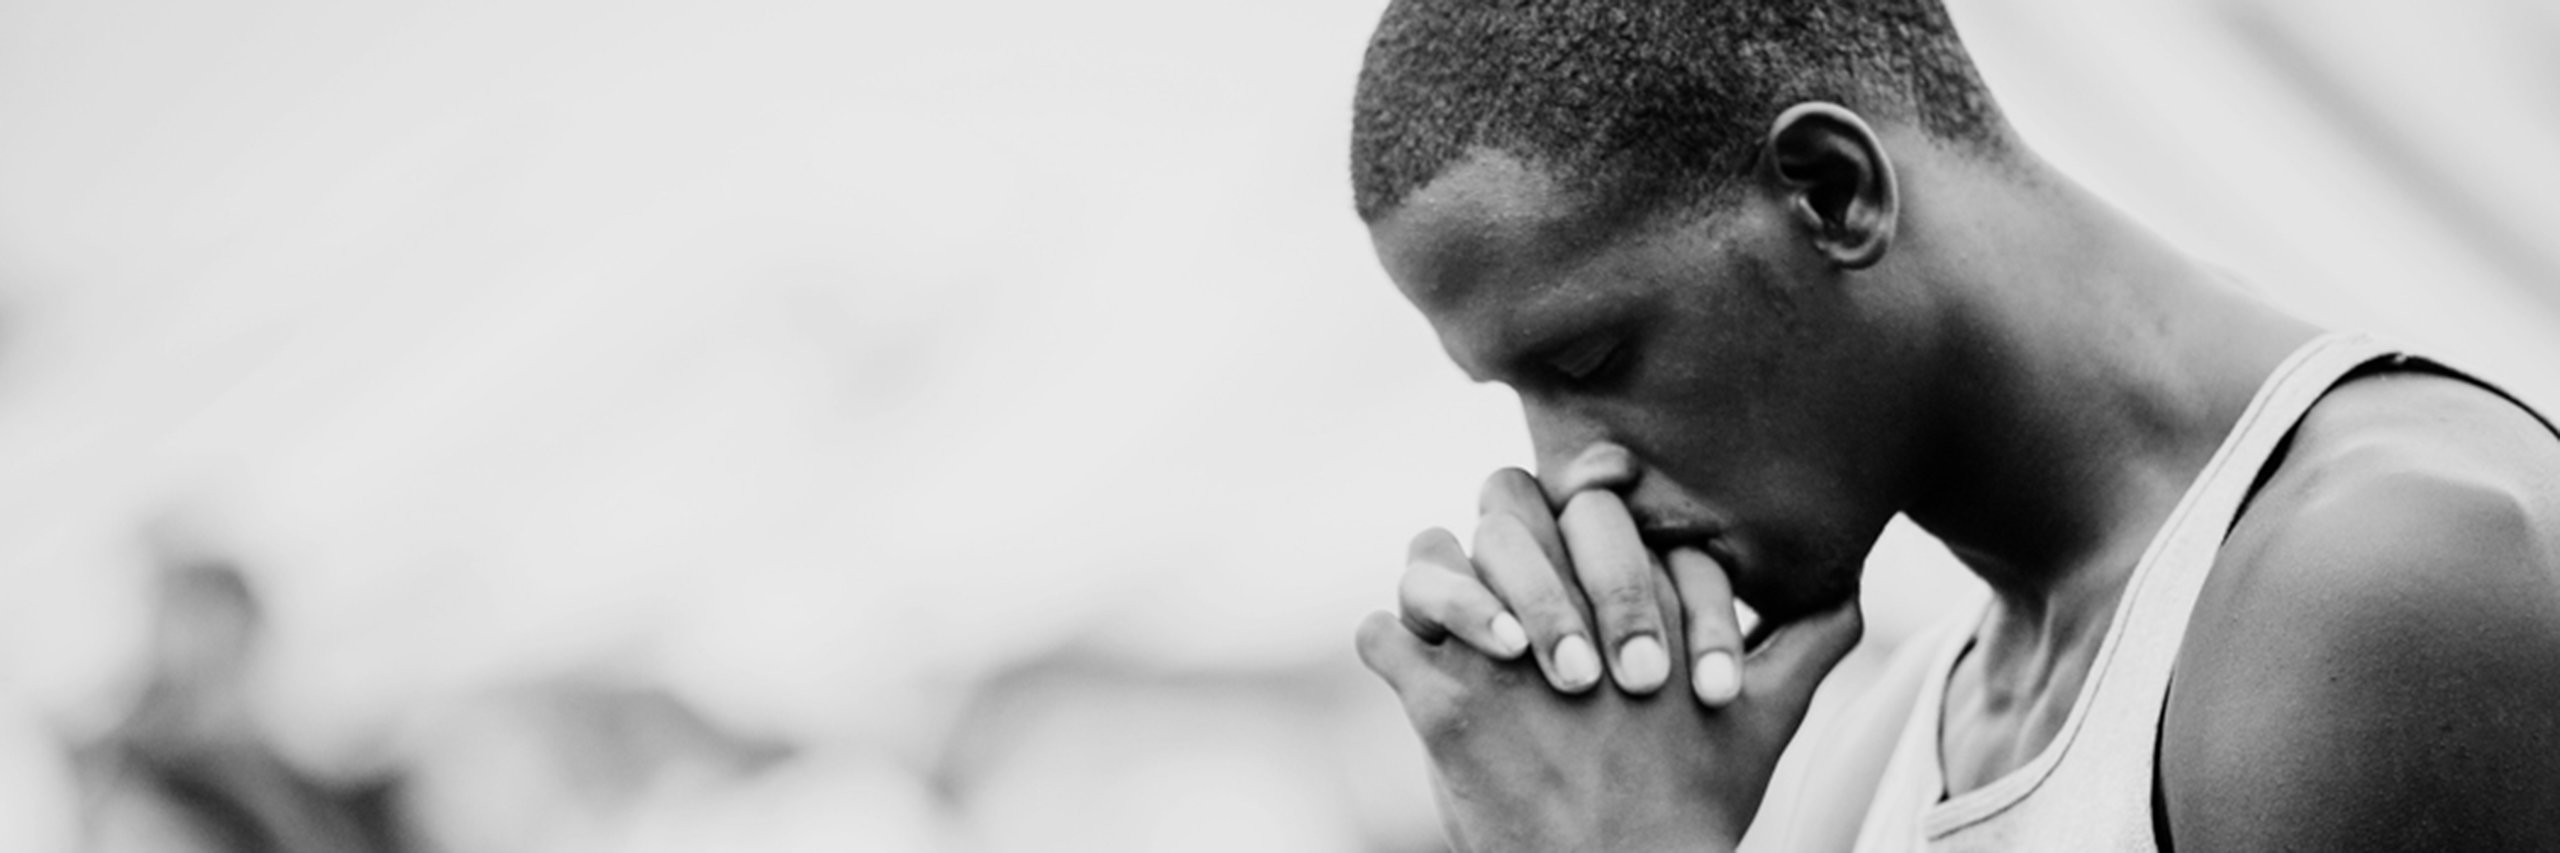 15504_man_praying-2560x853